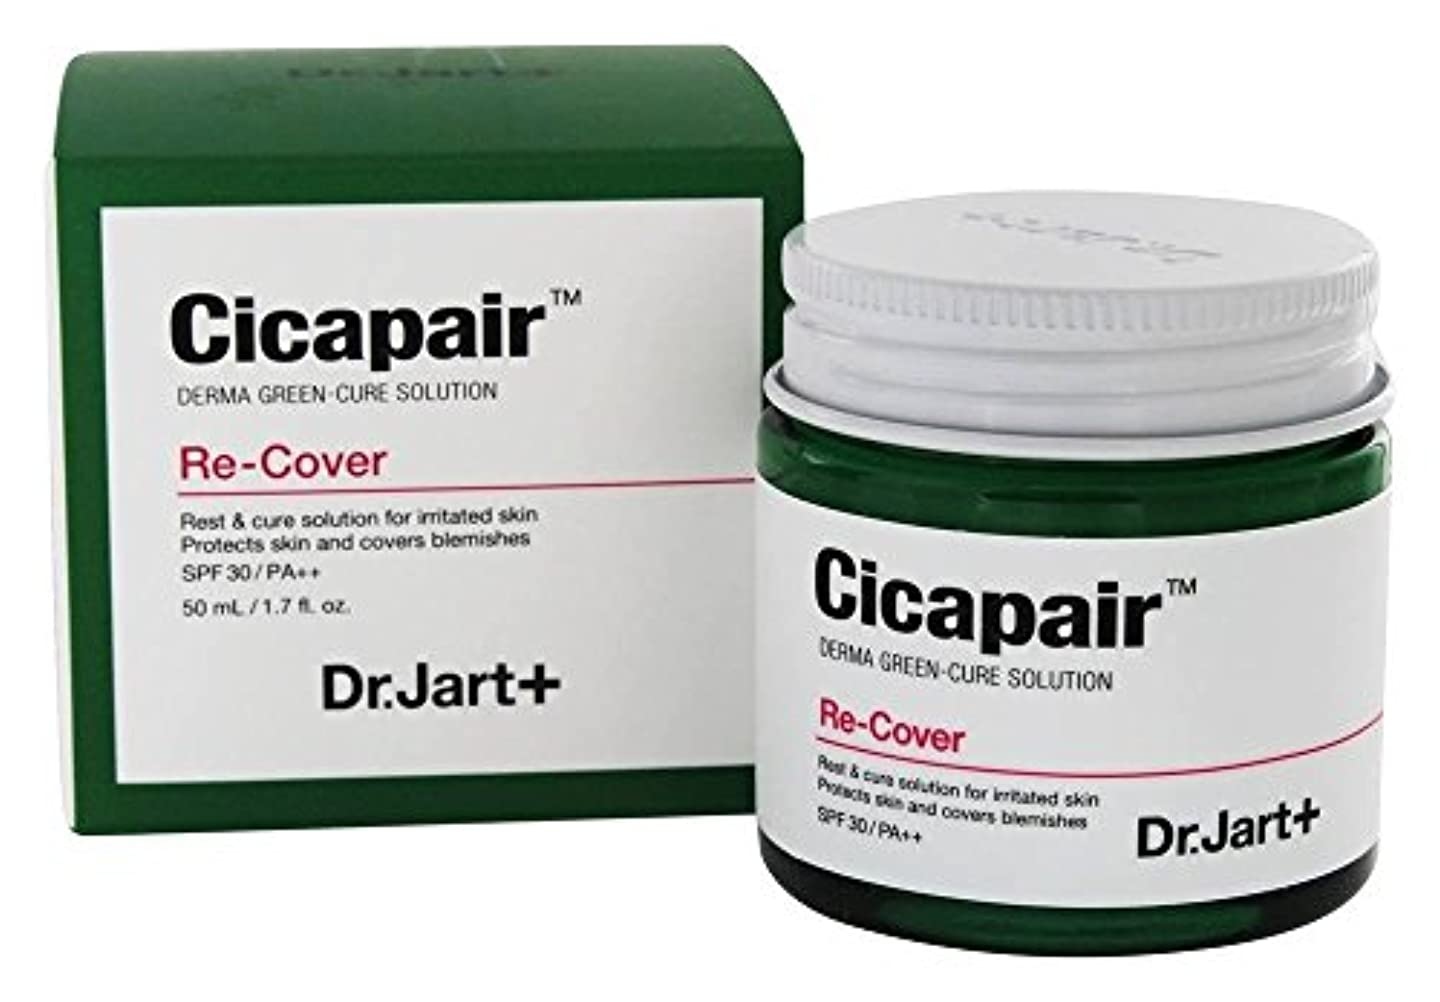 フェンス微弱レベルDr. Jart+ Cicapair Derma Green-Cure Solution Recover Cream 50ml [並行輸入品]